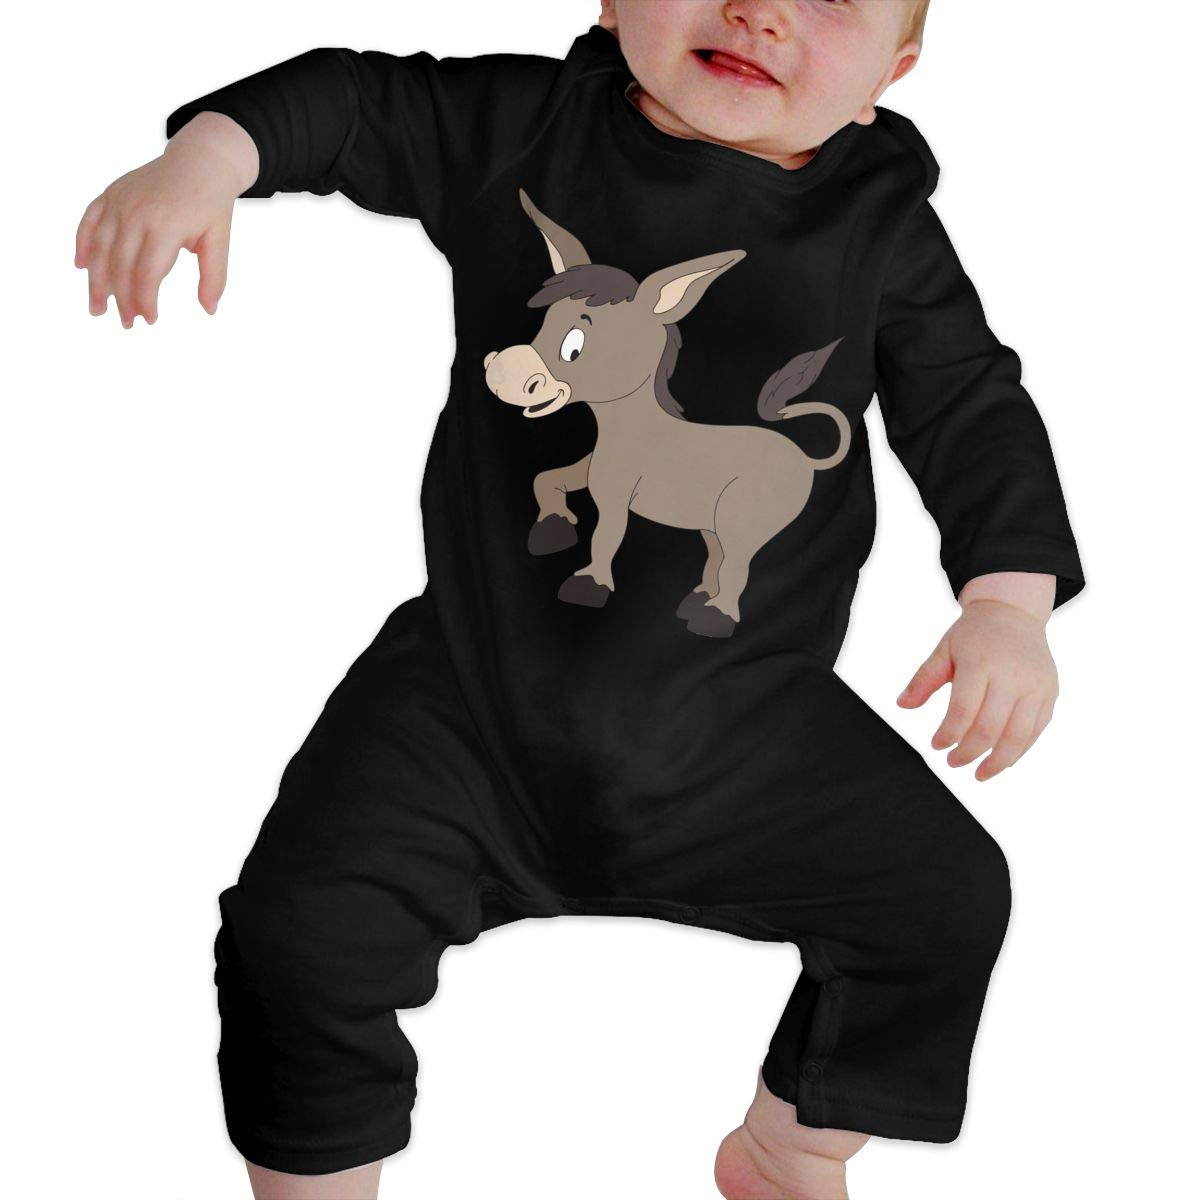 UGFGF-S3 Donkey Toddler Baby Long Sleeve Romper Jumpsuit Baby Rompers